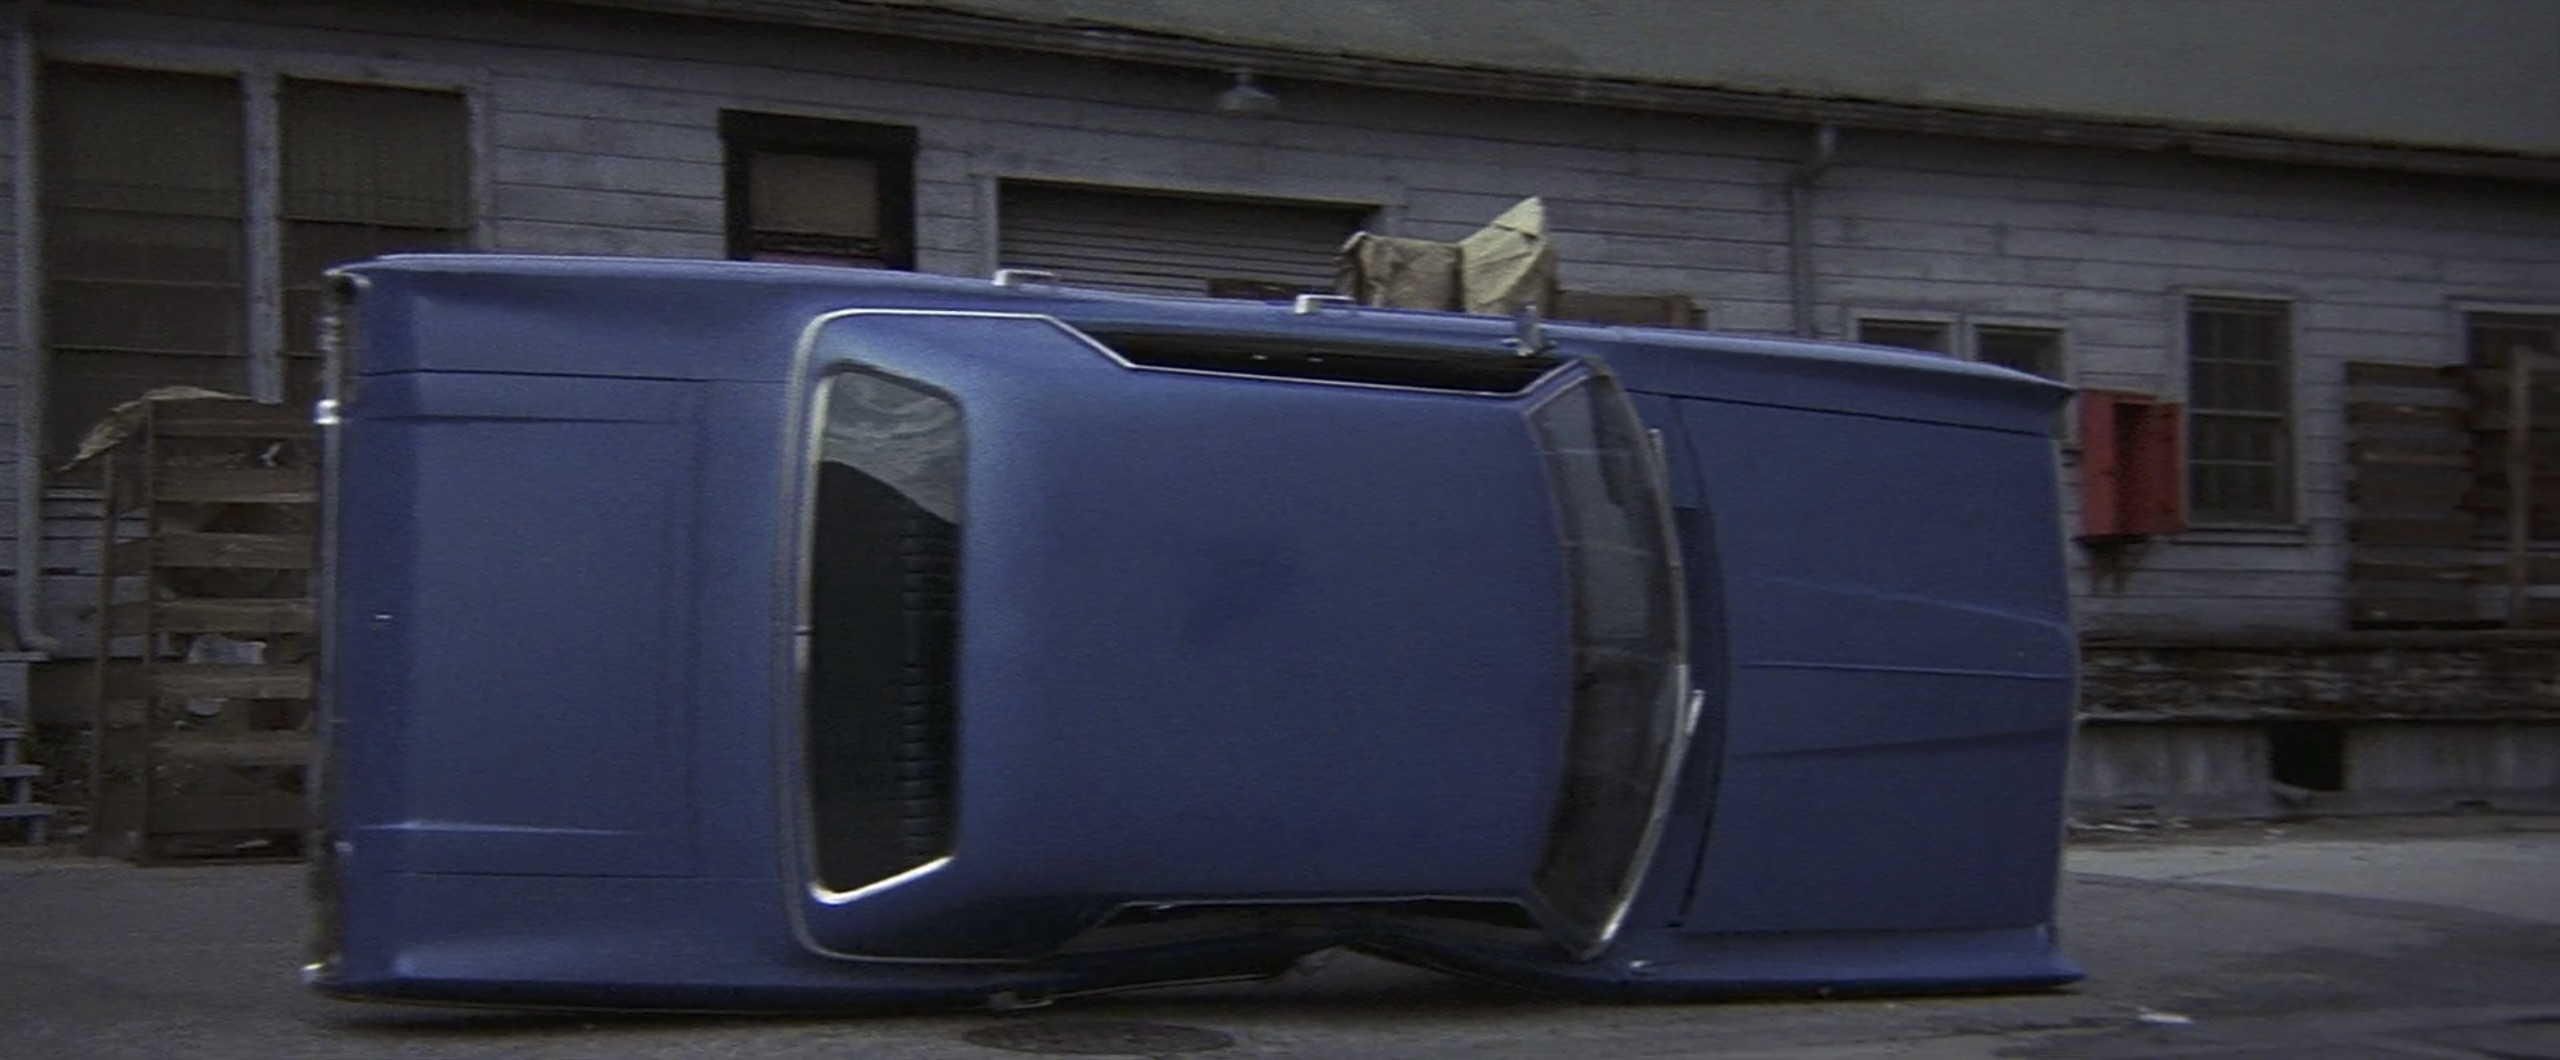 Car flip Cleopatra Jones